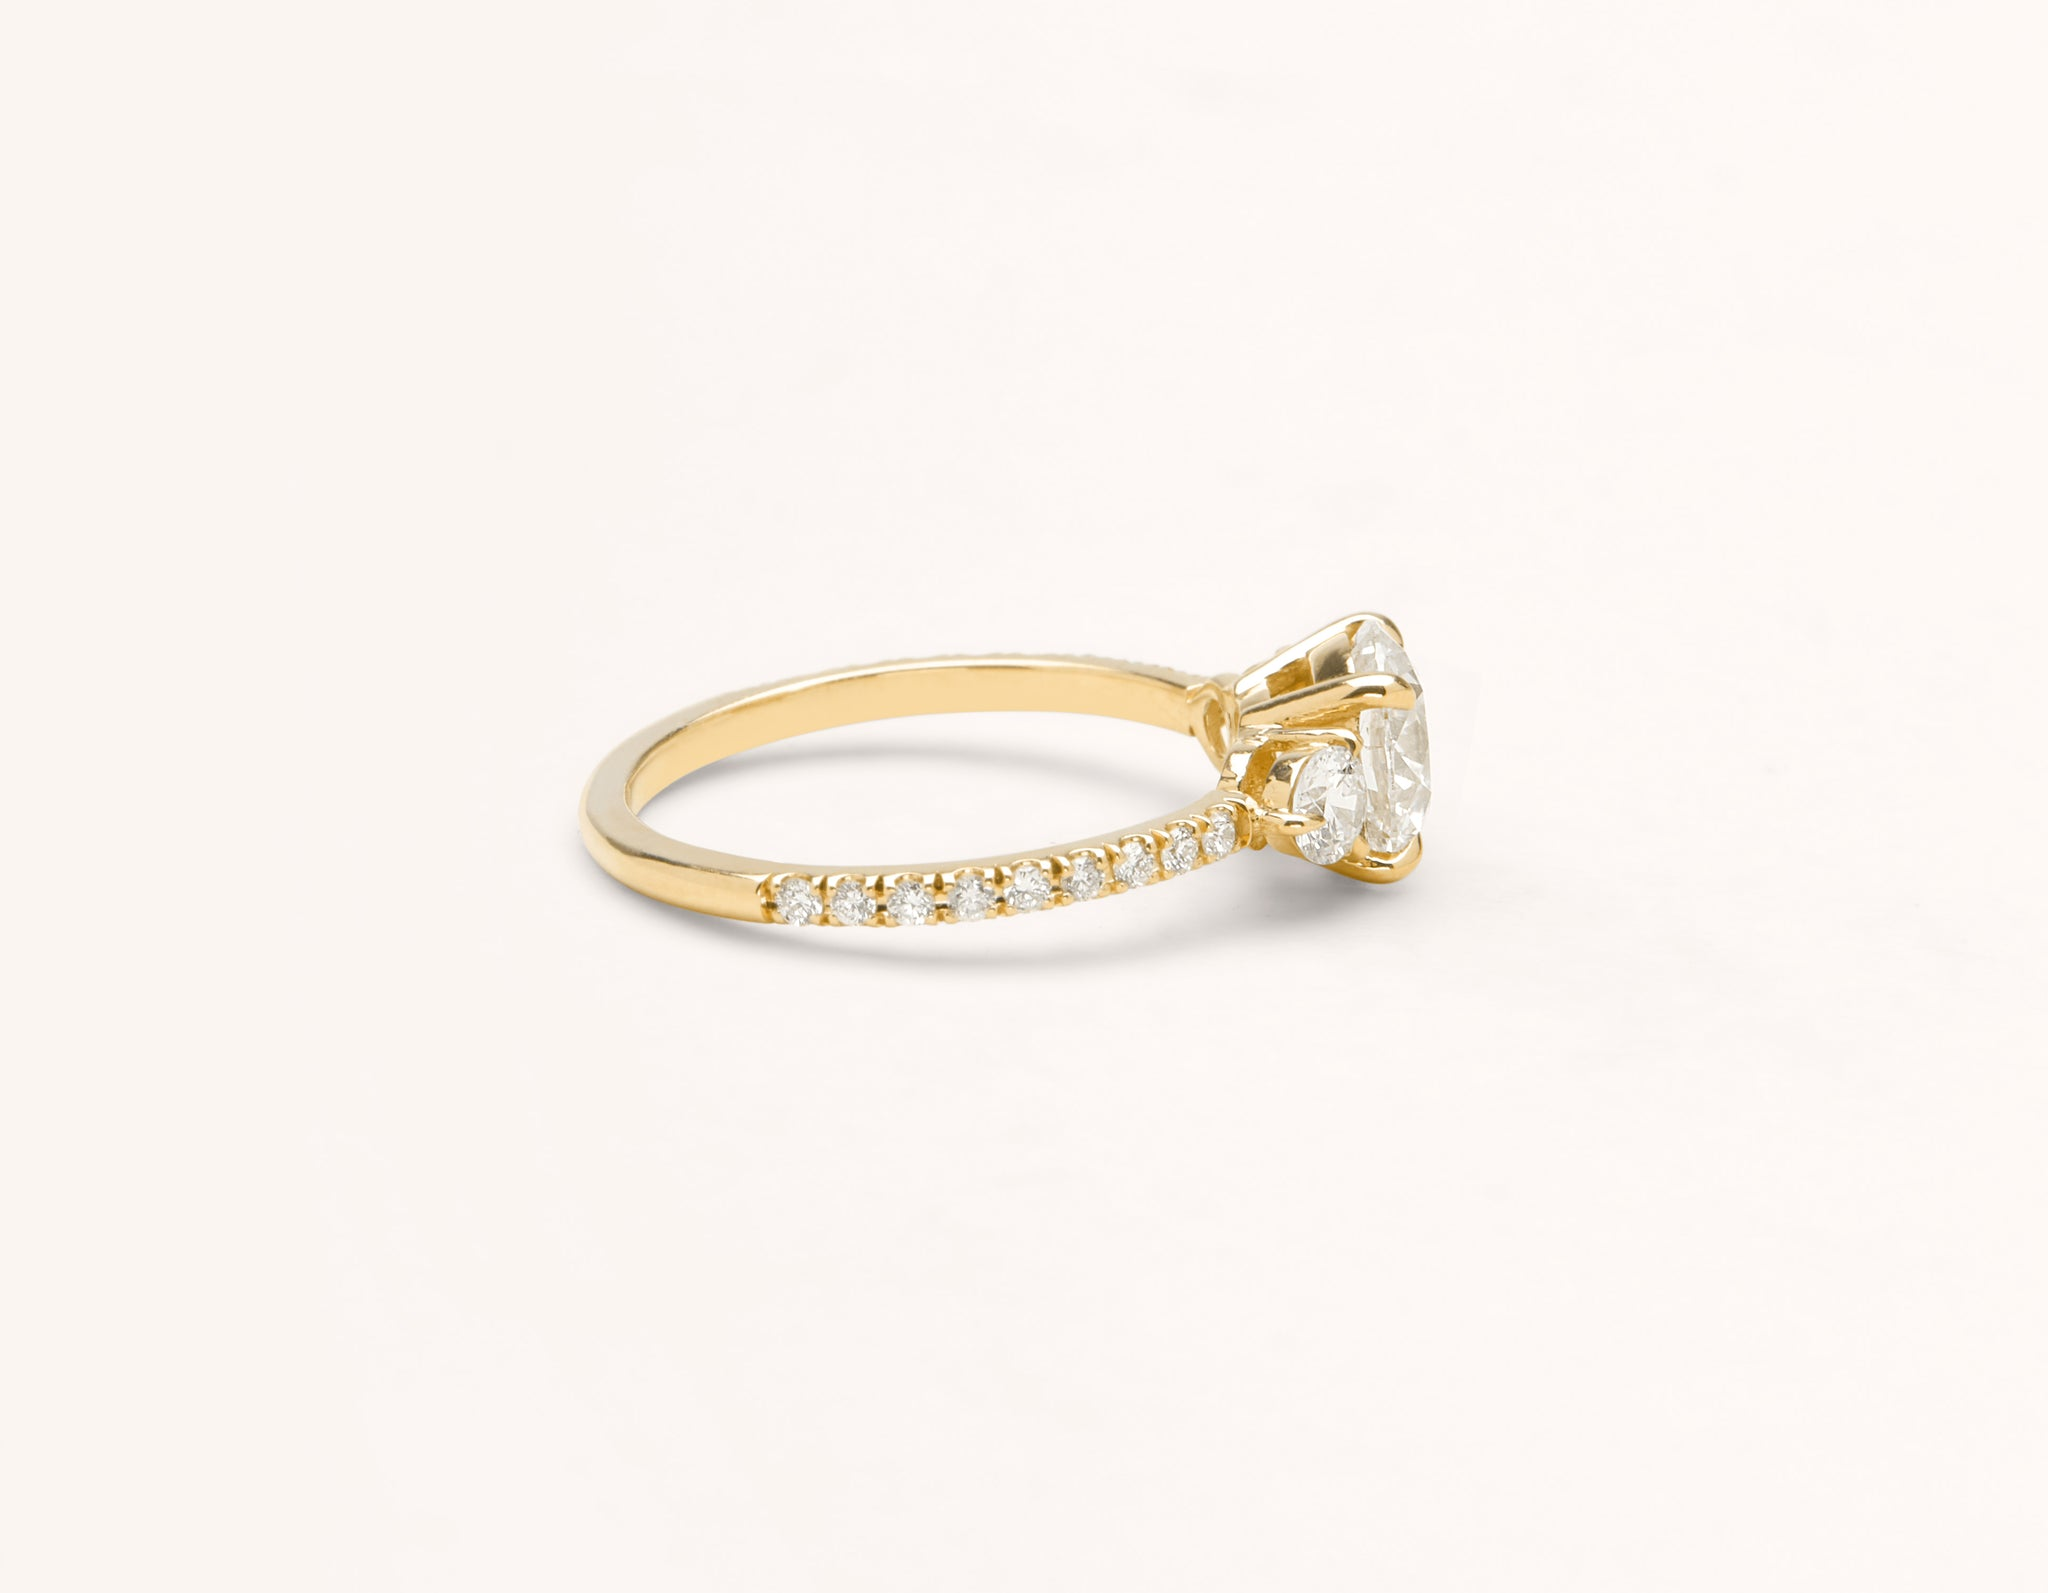 Simple modern 18k solid yellow gold 1 carat Three Stone diamond pave engagement ring Vrai & Oro